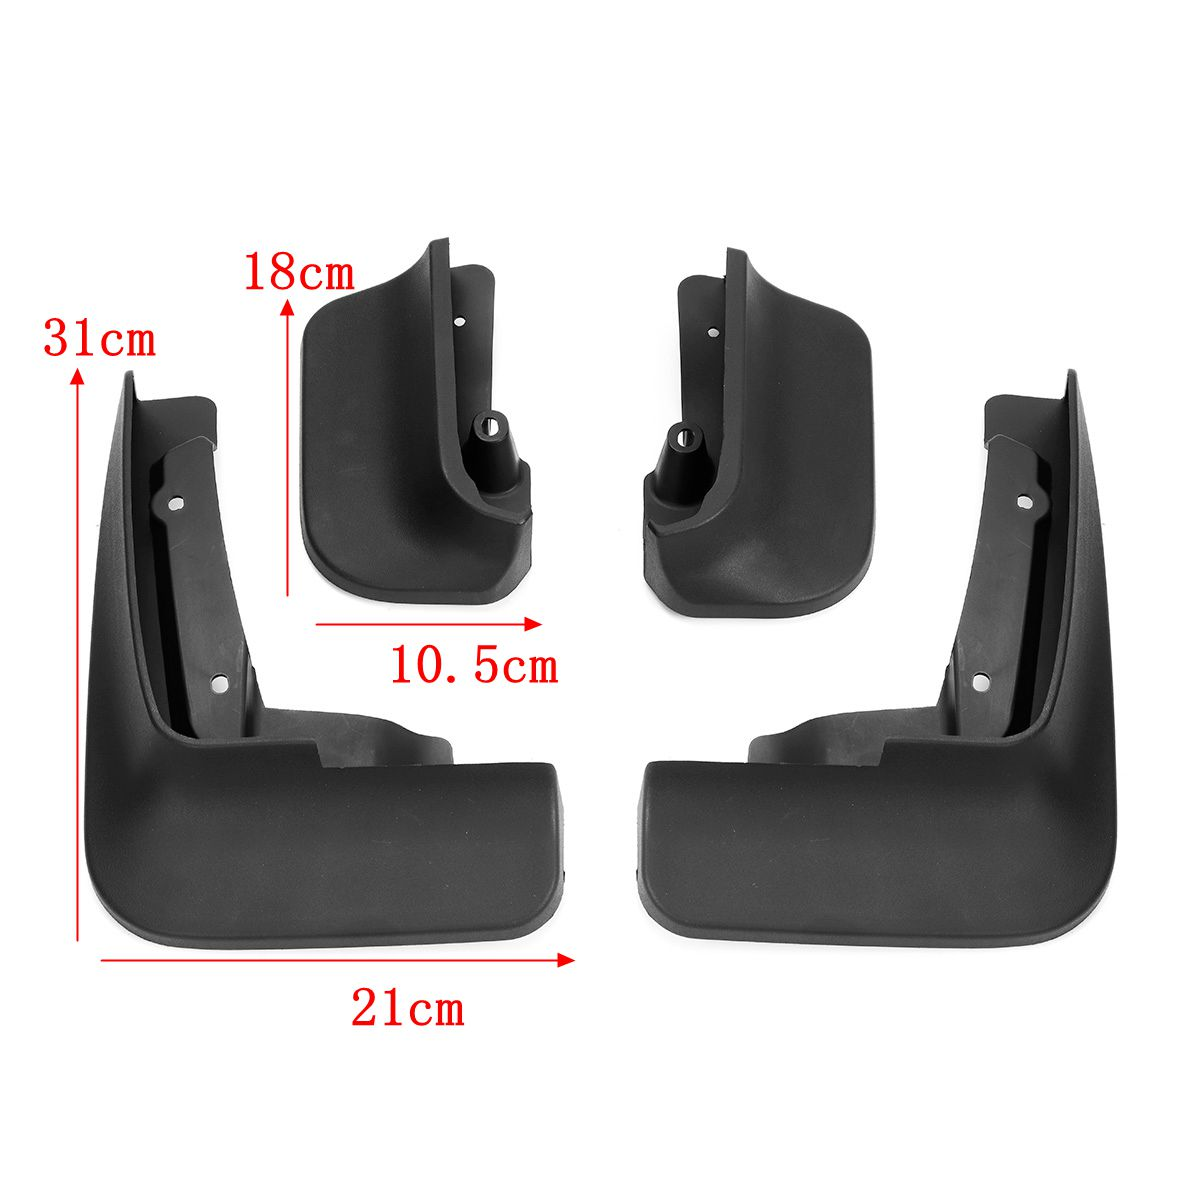 Image 5 - Car Mud Flaps Splash Guards for Fender Mudflaps Mudguards For VW Transporter T6 Caravelle 2016 2017 2018 Mulivan 2017 2018-in Mudguards from Automobiles & Motorcycles